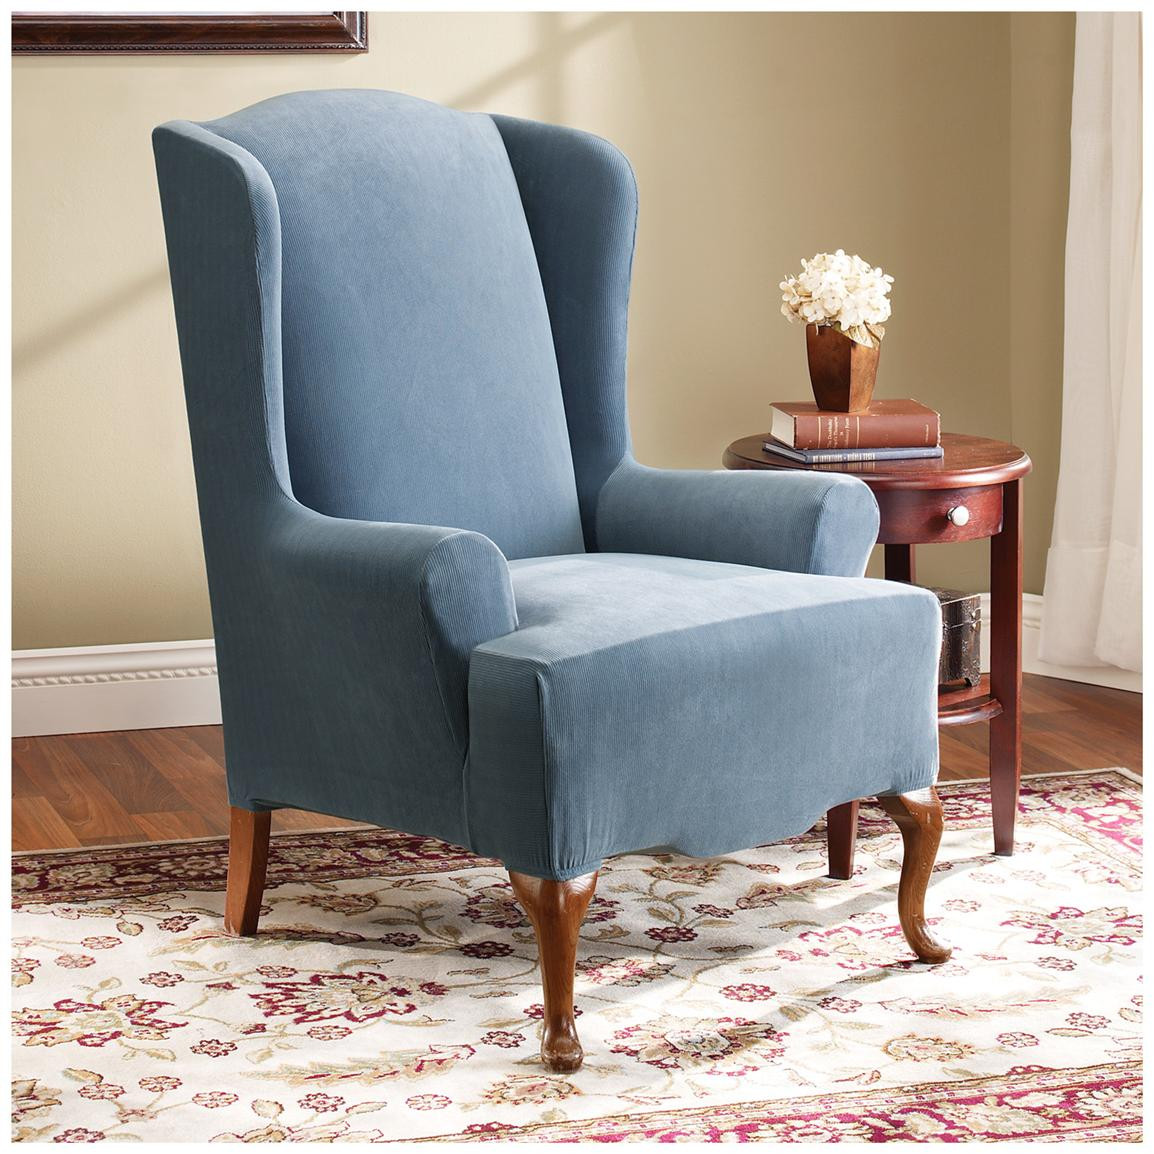 Best ideas about Surefit Chair Cover . Save or Pin Sure Fit Stretch Pearson Wing Chair Slipcover Now.